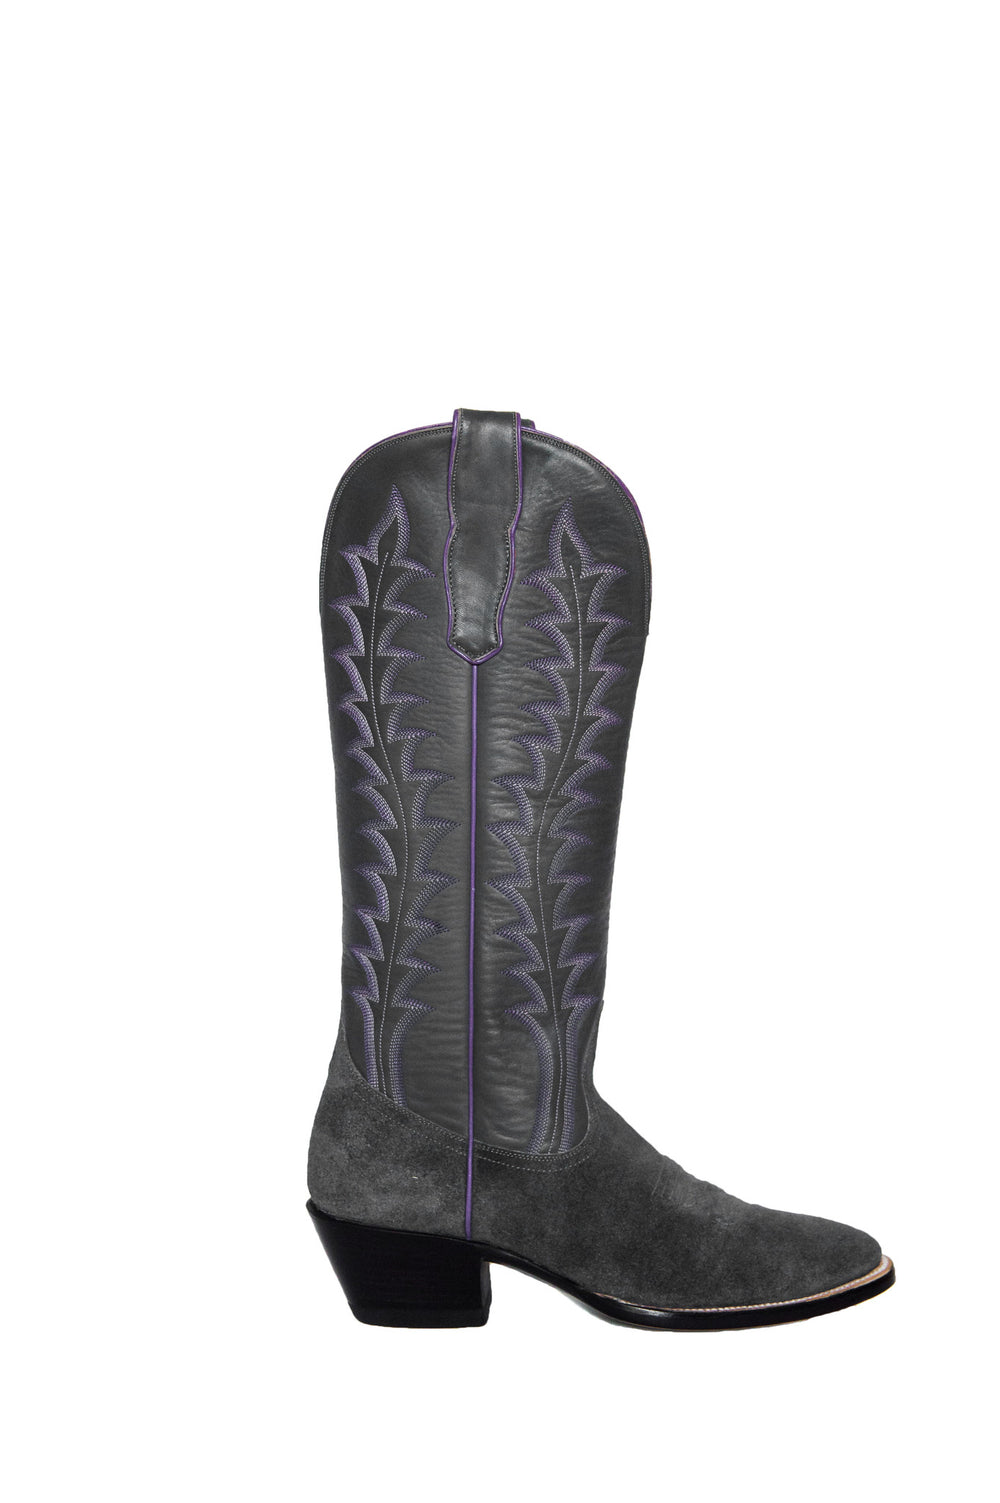 CITY Boots Milam Women's Gray Cowboy Boots - CITY Boots